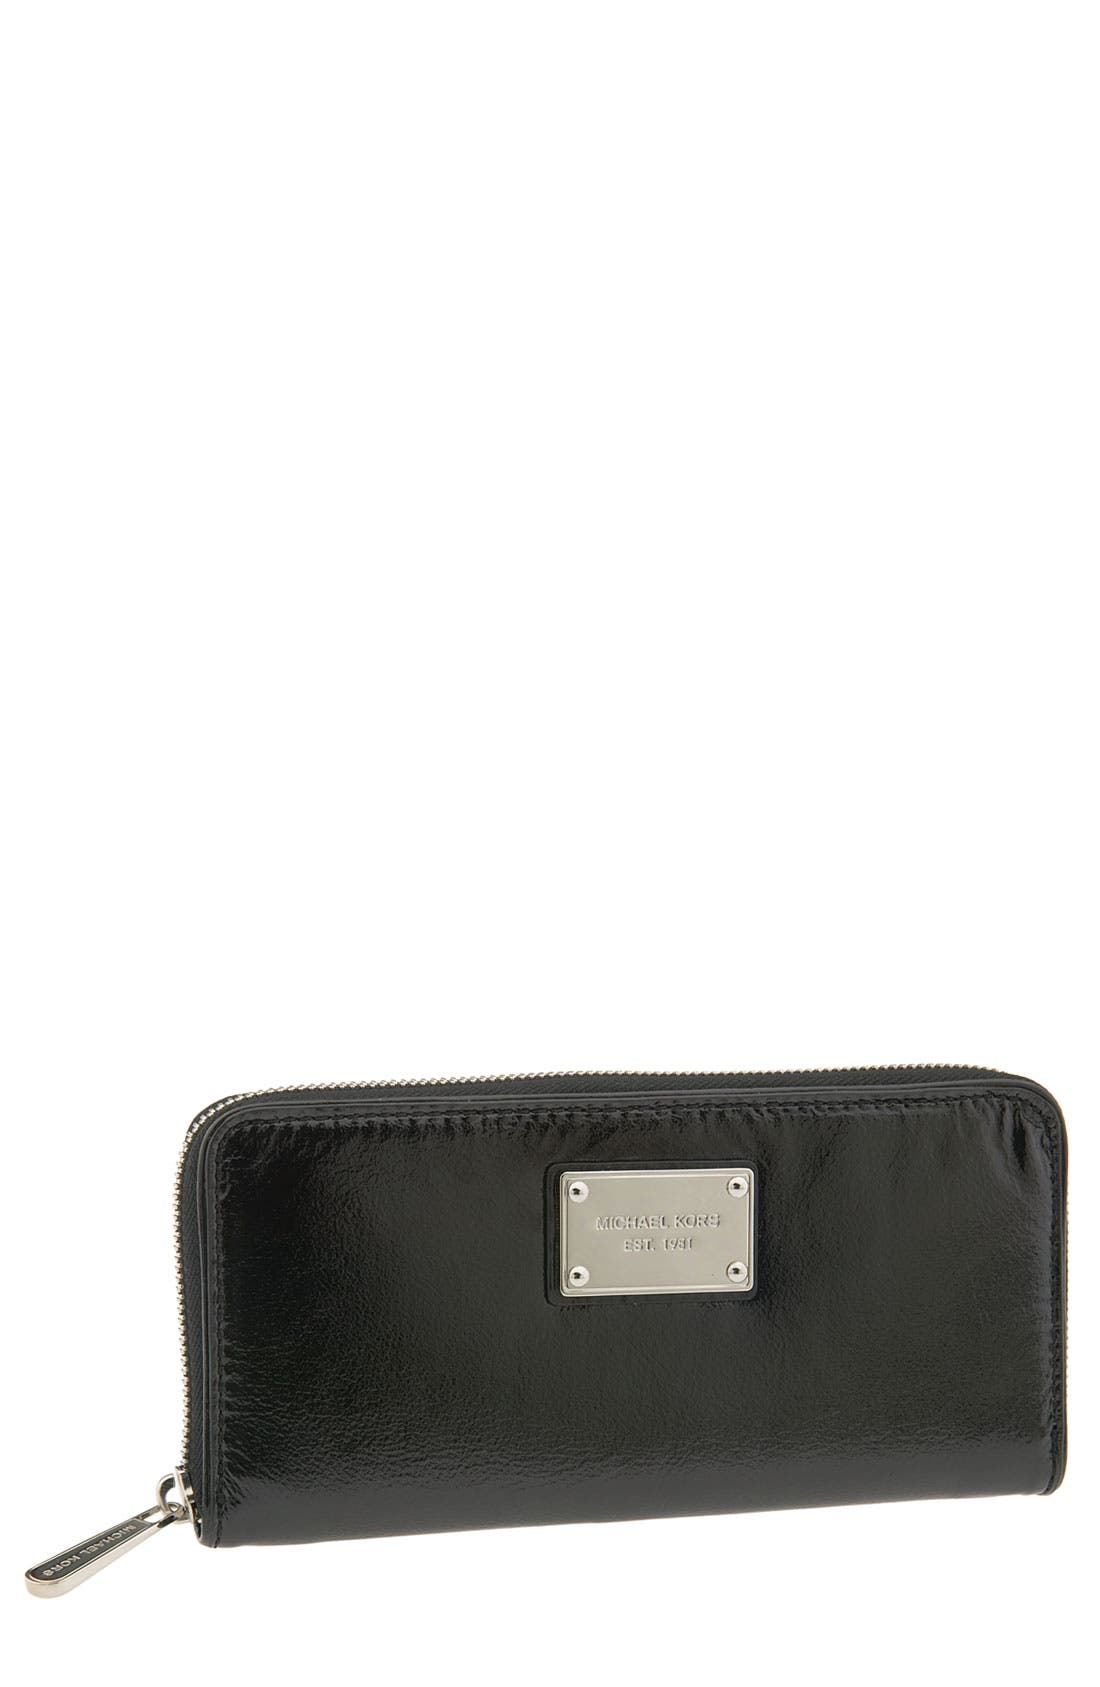 MICHAEL MICHAEL KORS,                             'Jet Set' Zip Around Continental Wallet,                             Main thumbnail 1, color,                             001